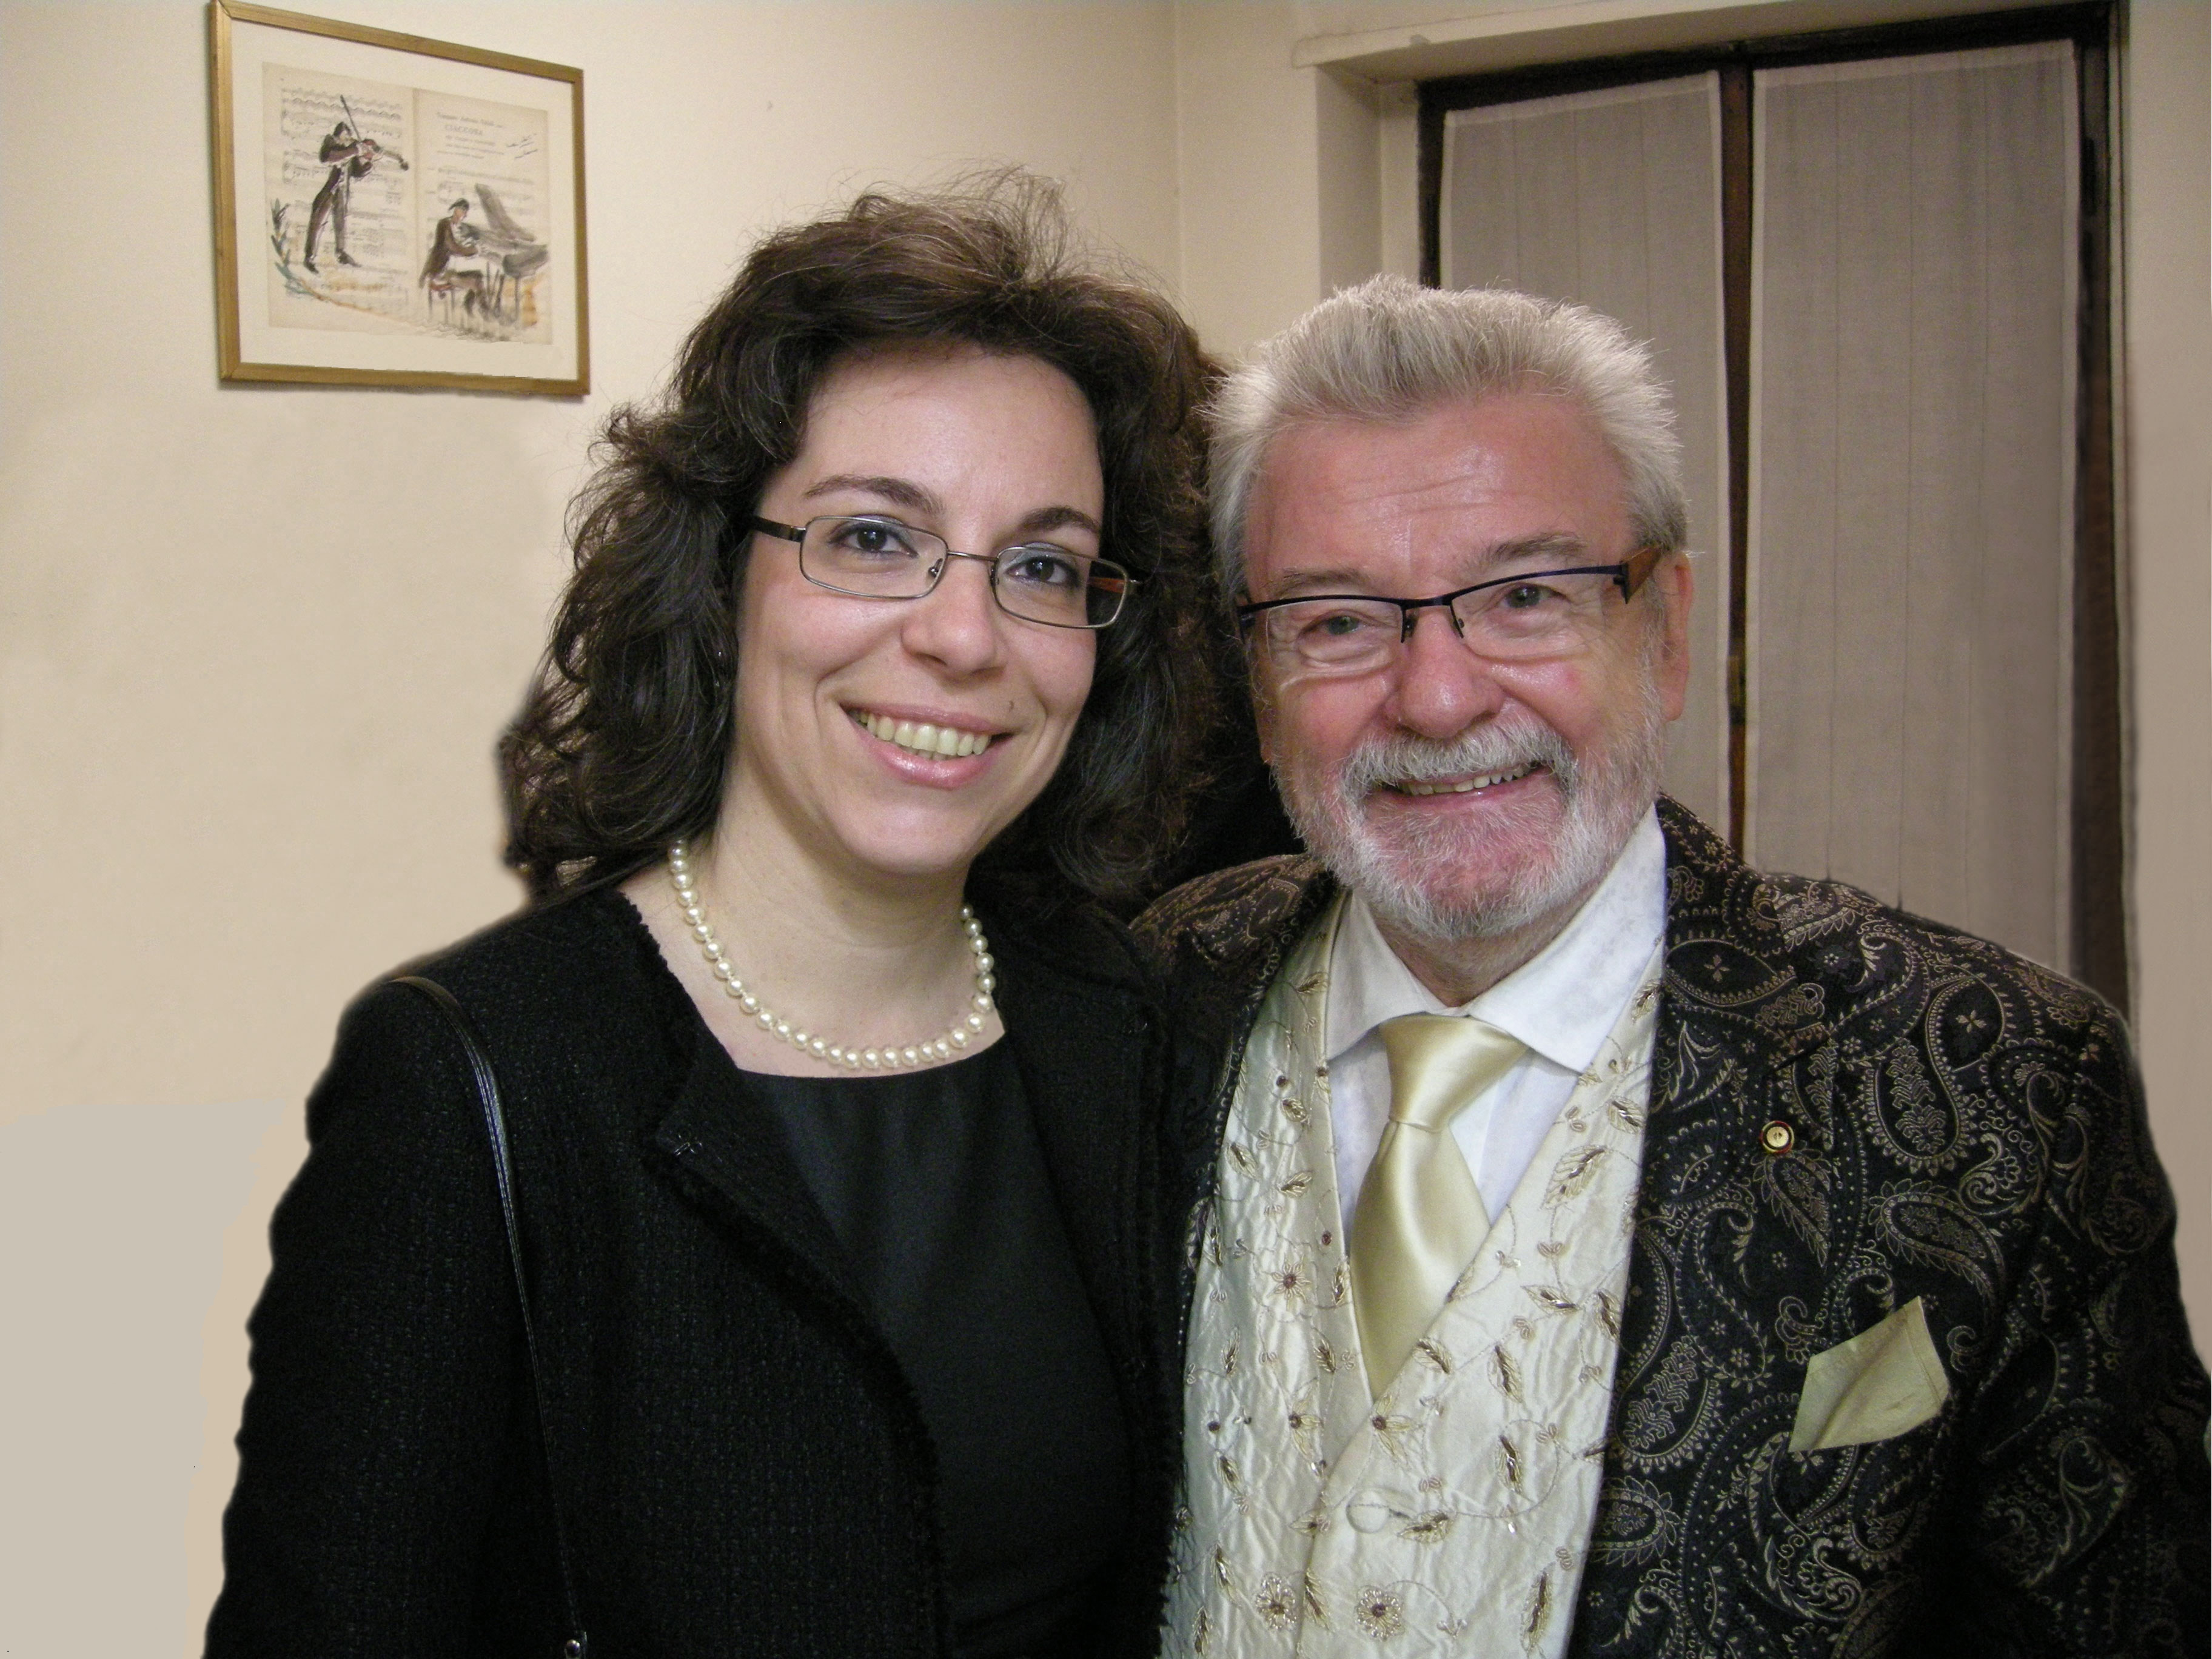 con Sir James Galway